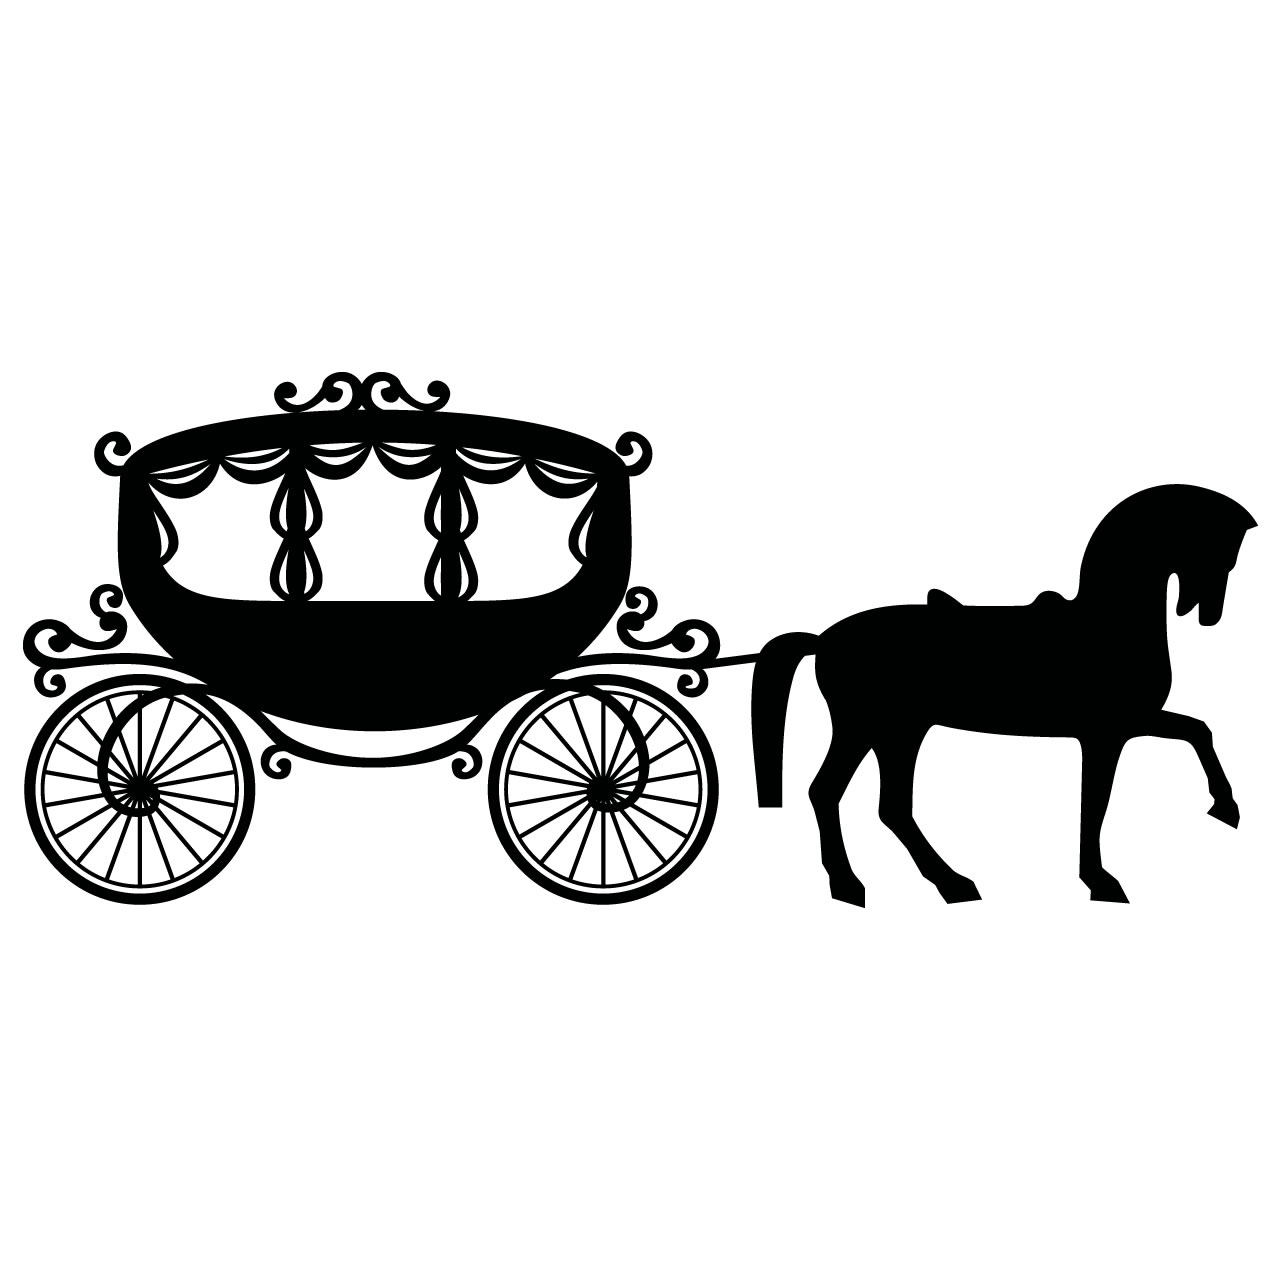 Cinderella Carriage Sketch Fairytale Princess Carriage